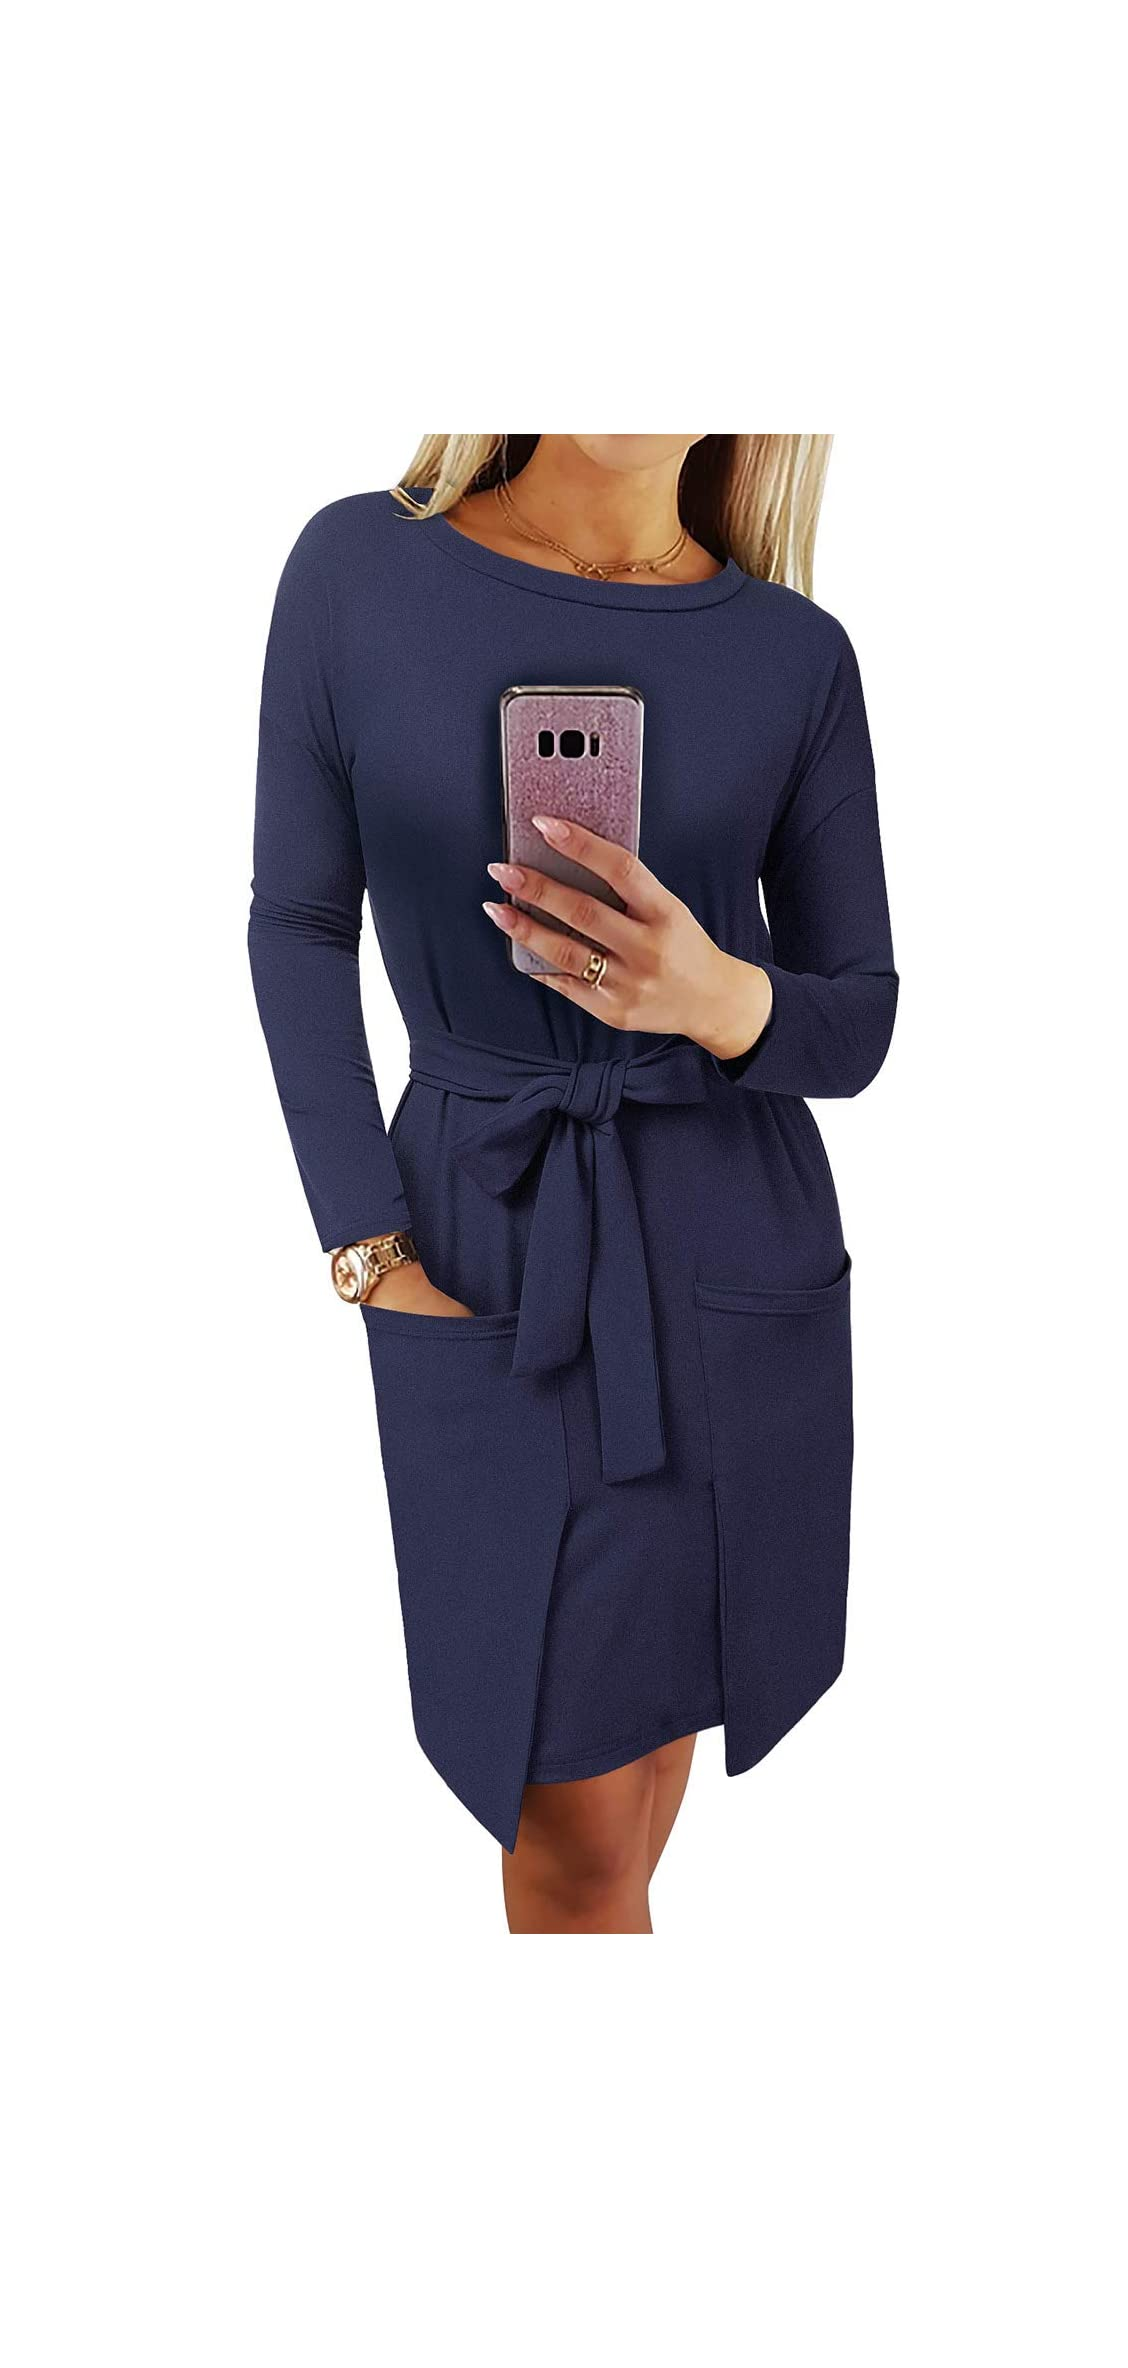 Women's Long Sleeve Pockets Midi Dress Casual T Shirt